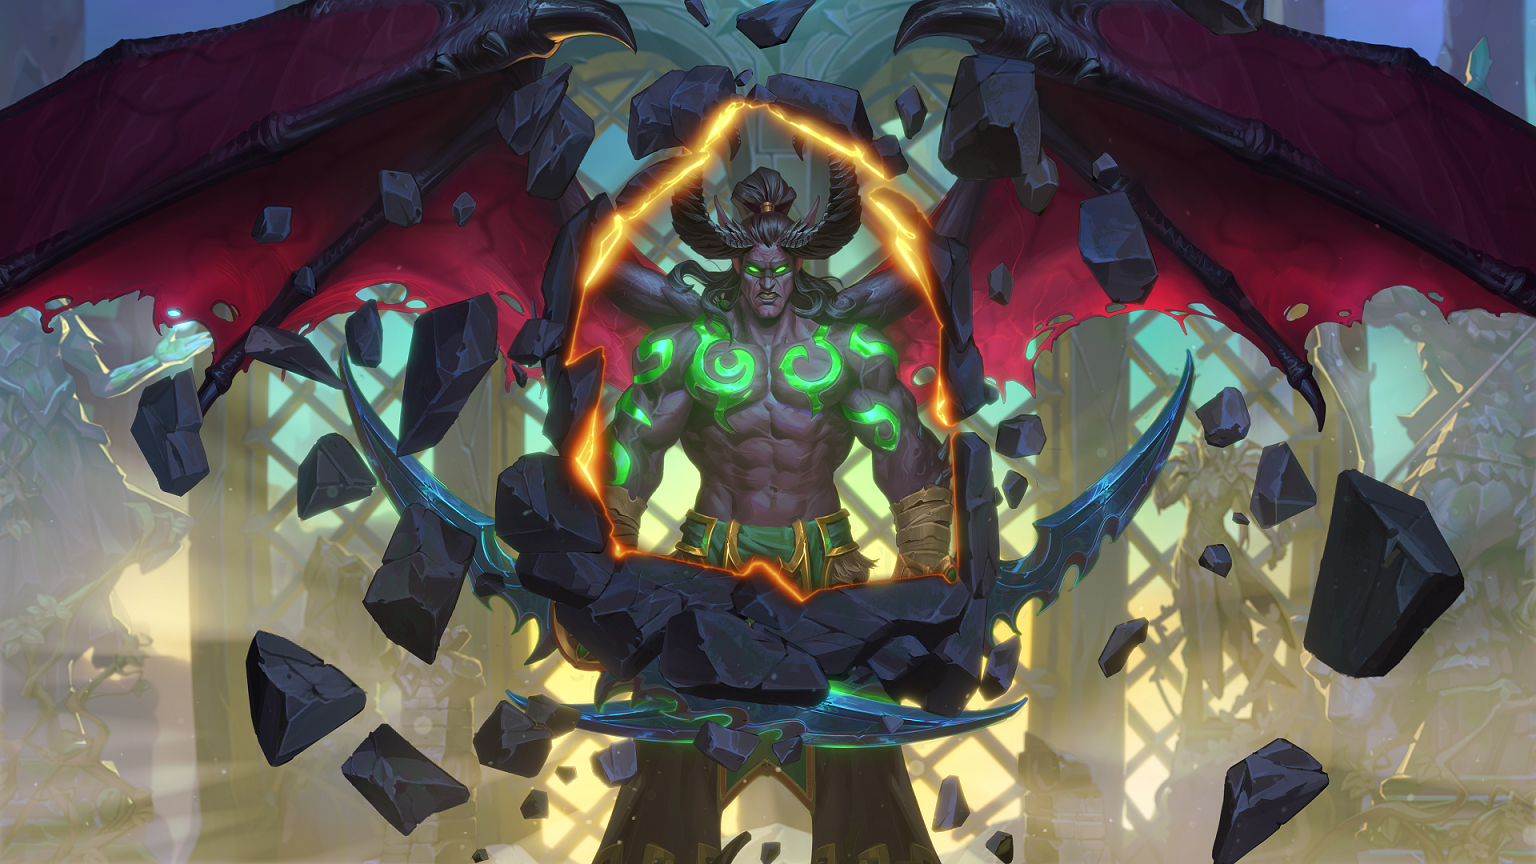 All Legendary cards in Hearthstone's Ashes of Outland expansion